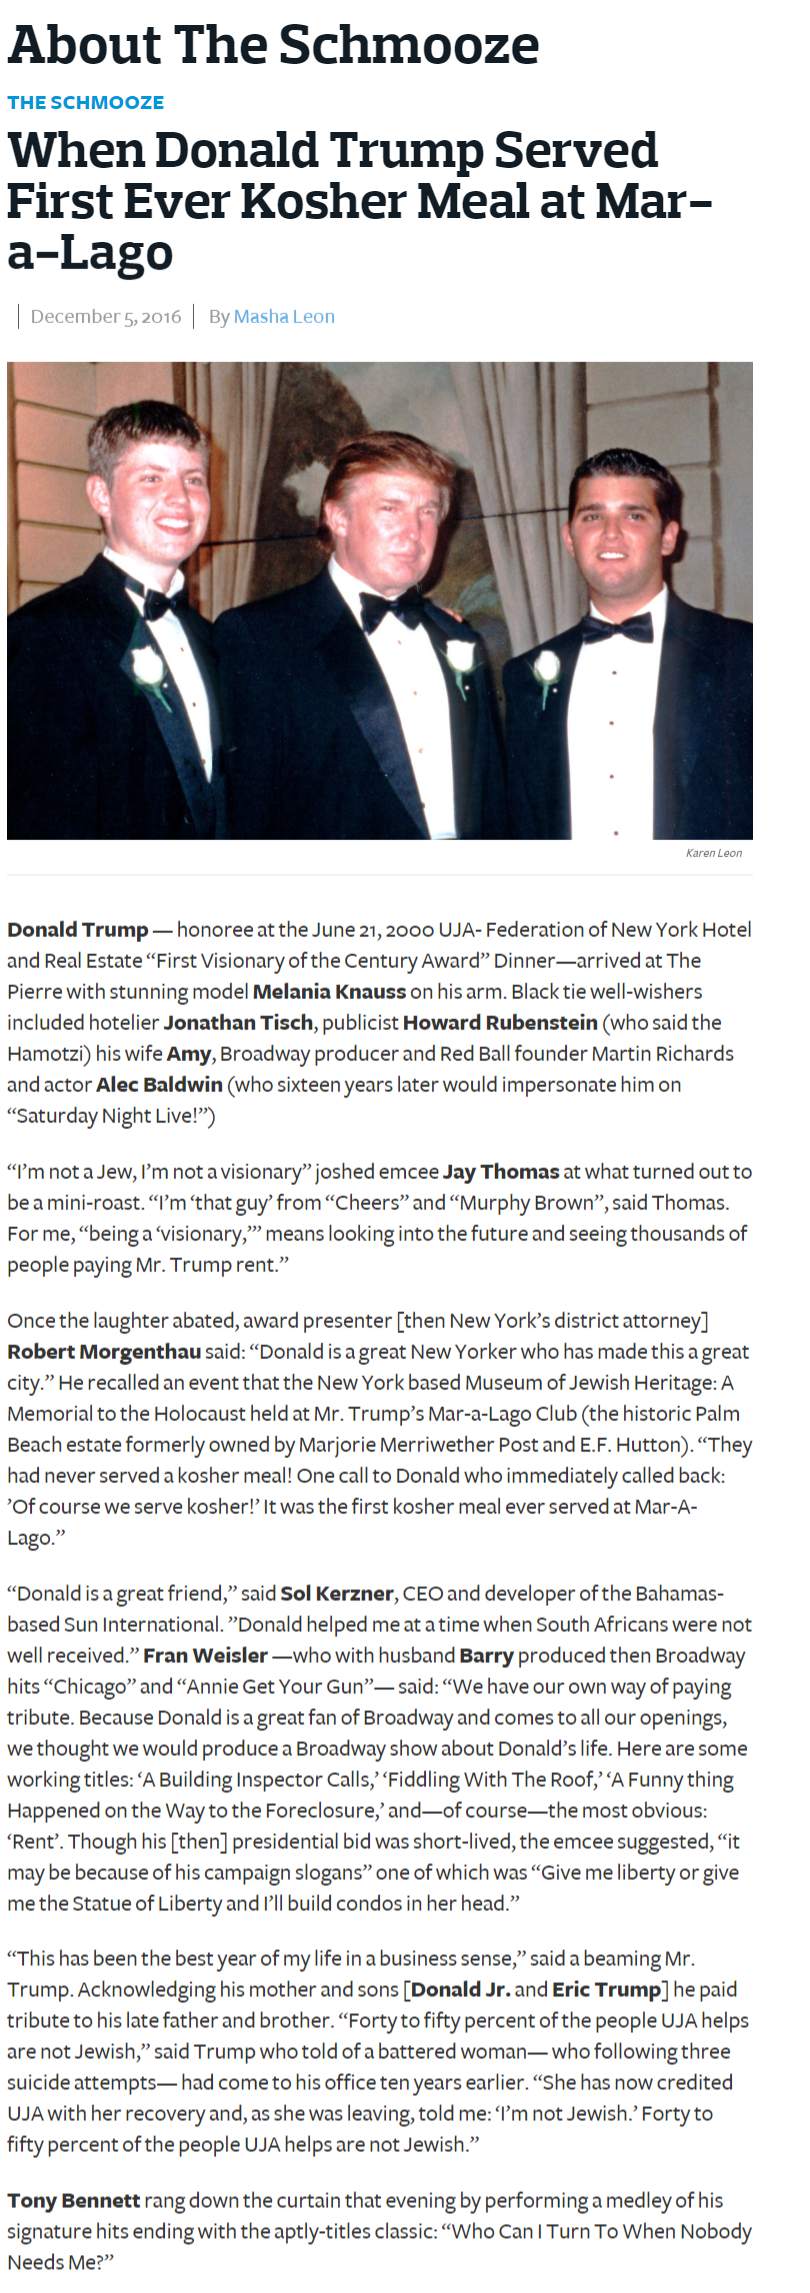 """Donald Trump, honoree at the UJA Federation of New York Dinner, was awarded the """"First Visionary of the Century Award""""."""